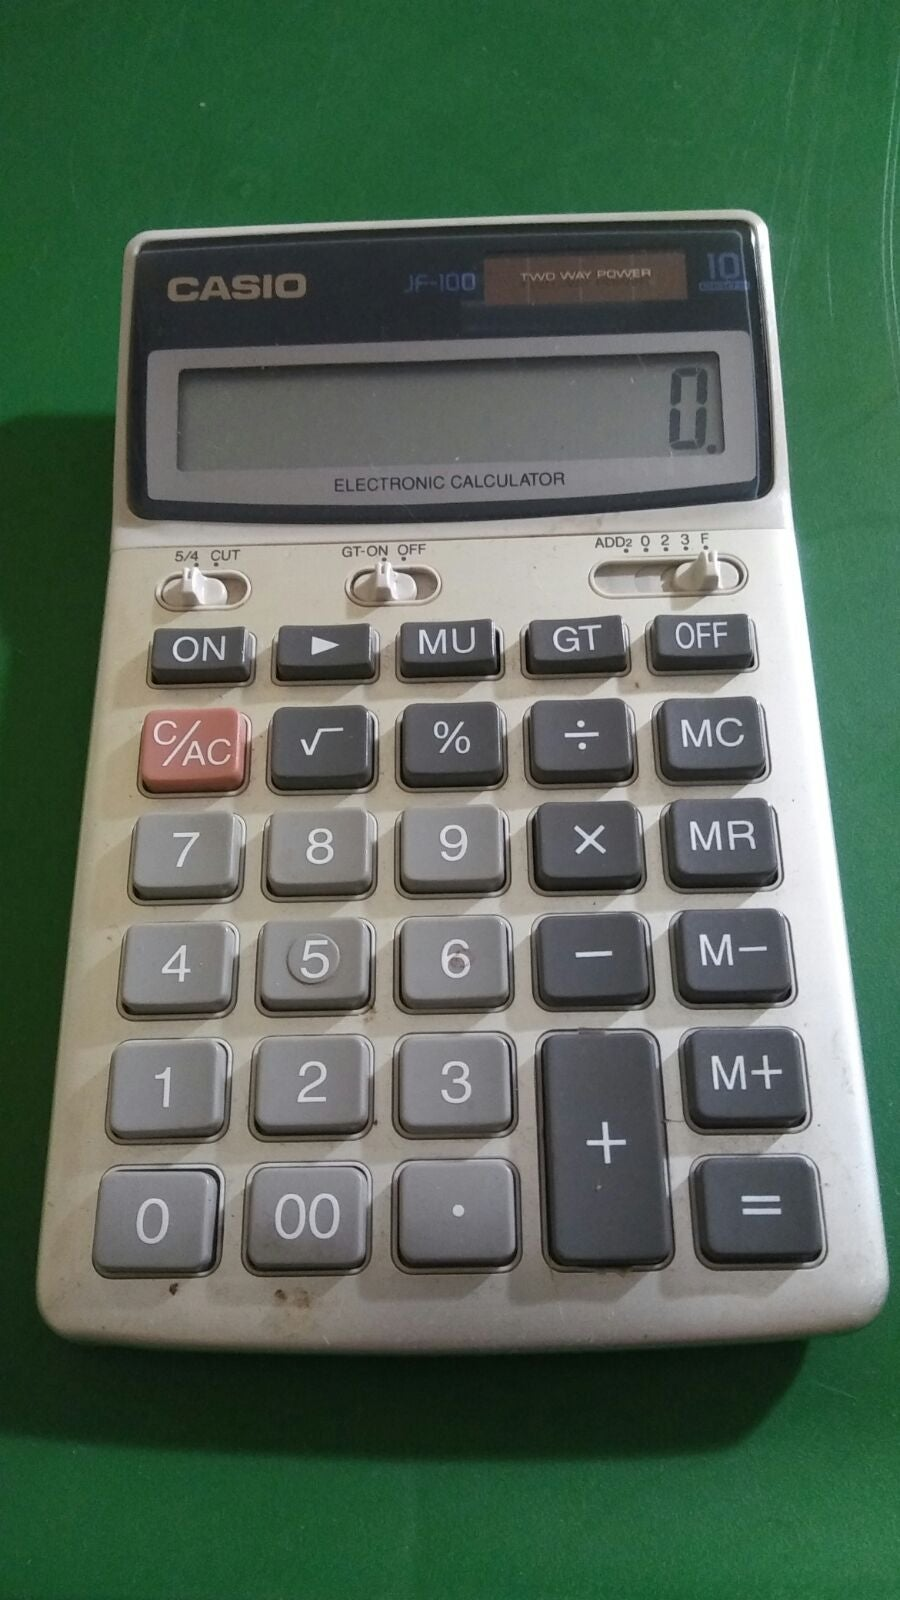 Casio JF-100 solar calculator